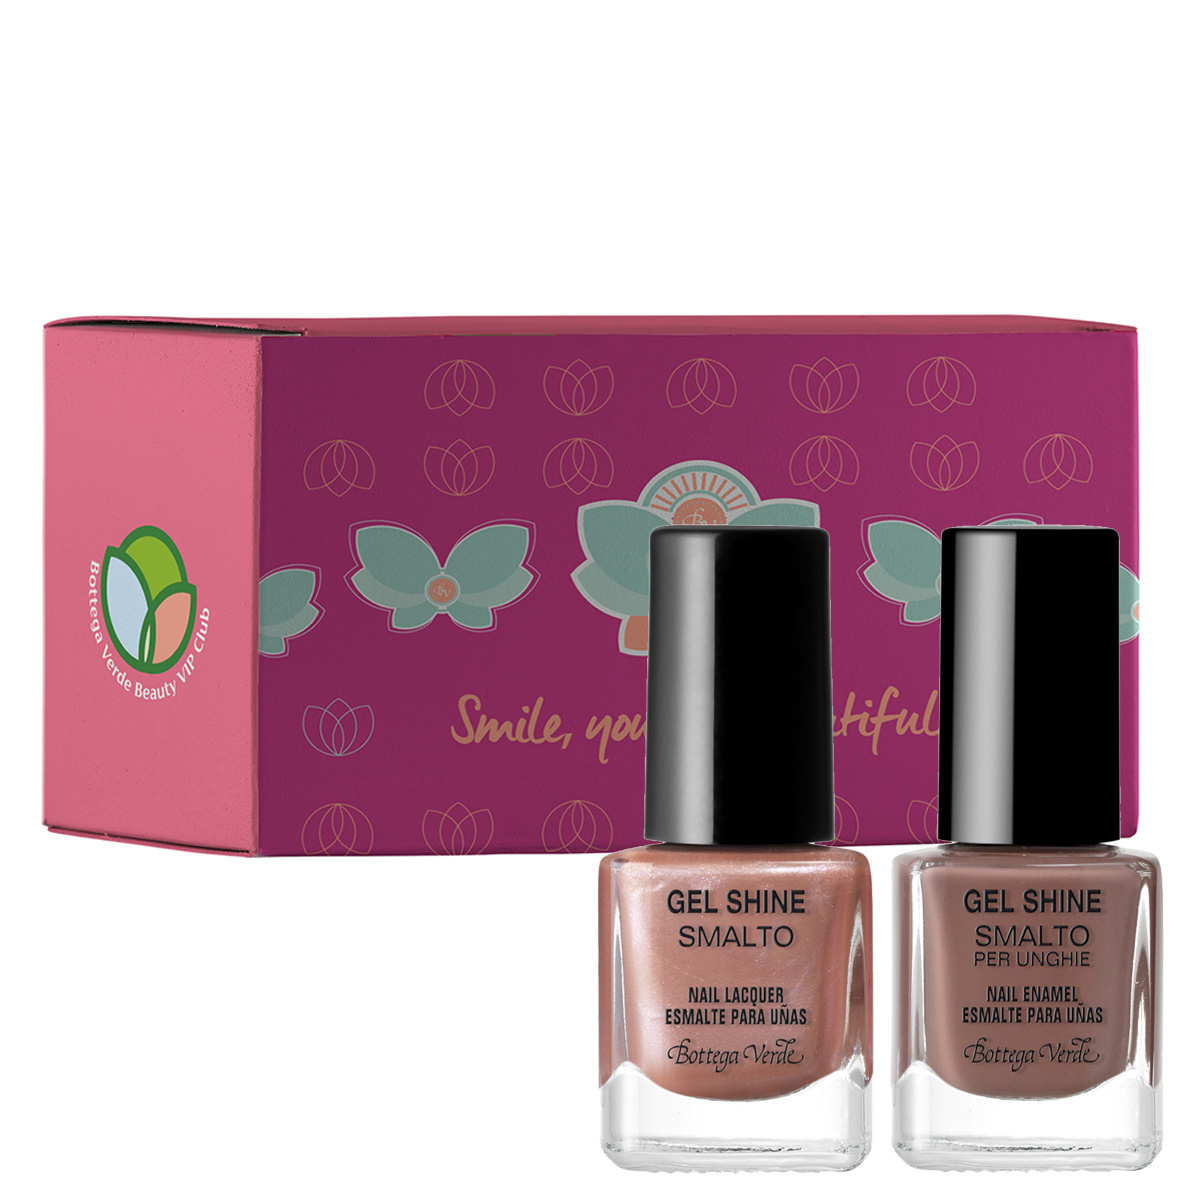 Set Peach and Chocolate - Gel Shine, 5 ML + 5 ML